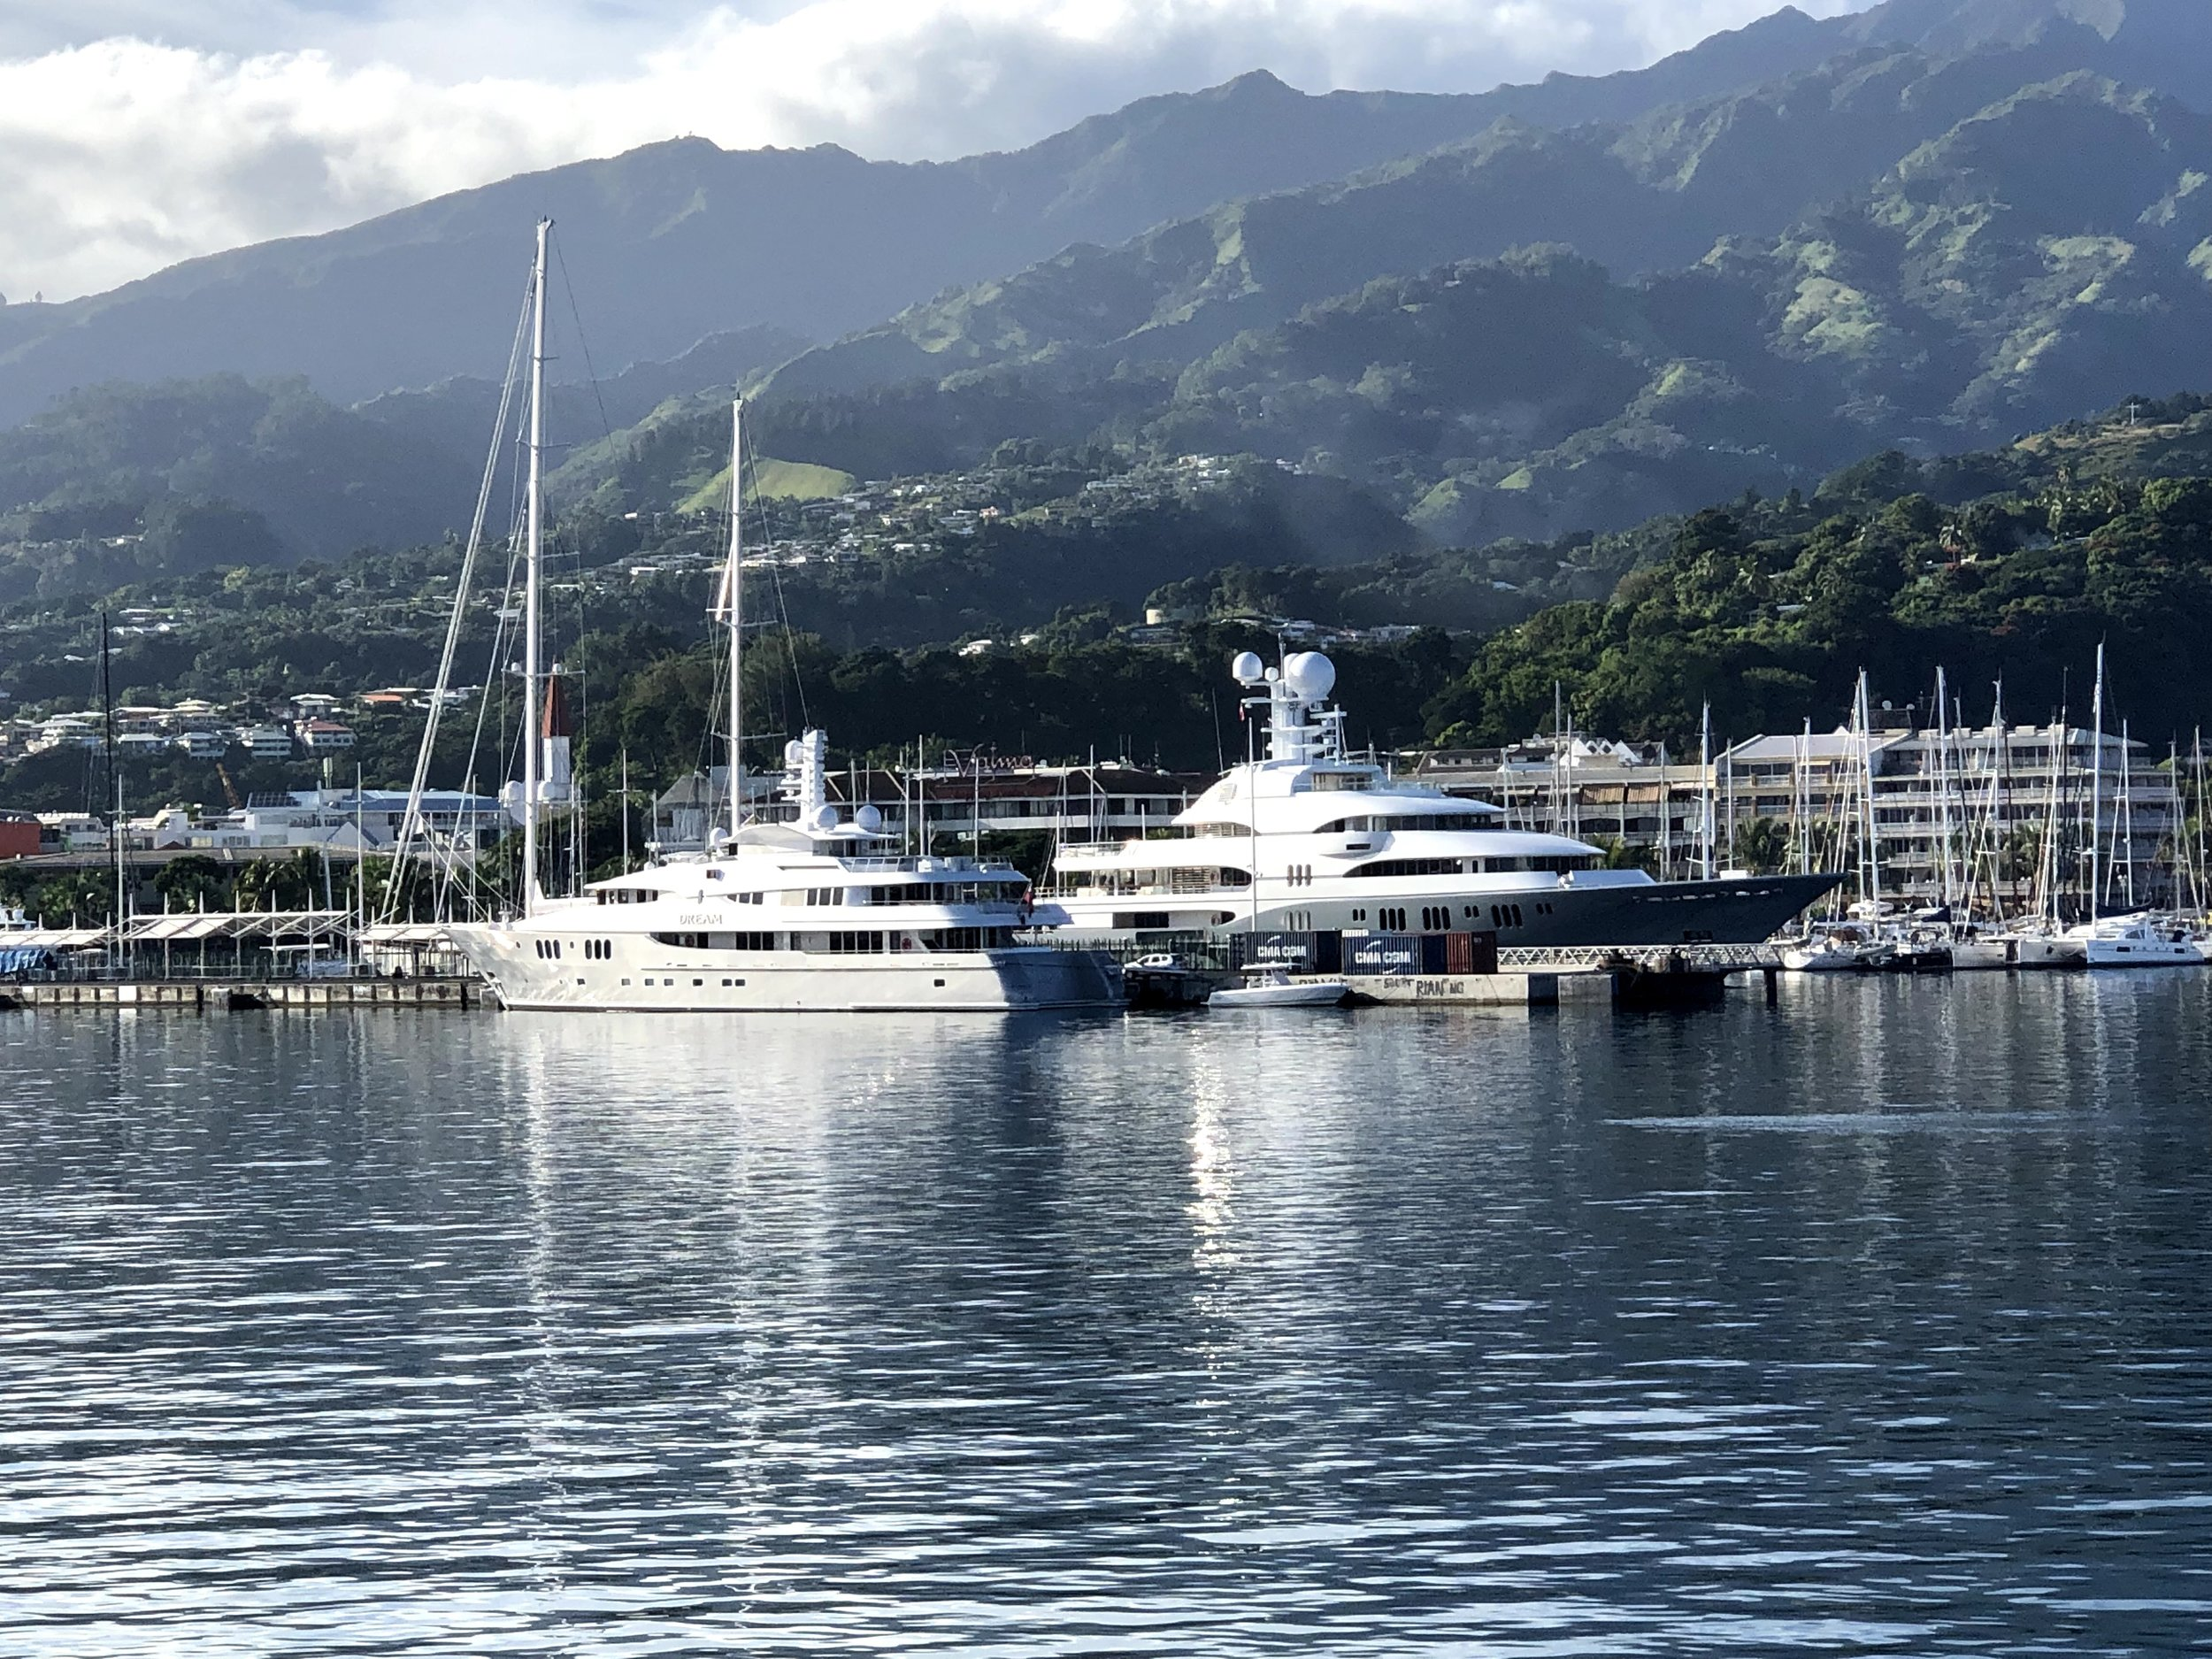 Tahiti welcomes around 50 superyachts annually. This year's event allowed the Australian contingent to view just on half that number in 2 days.